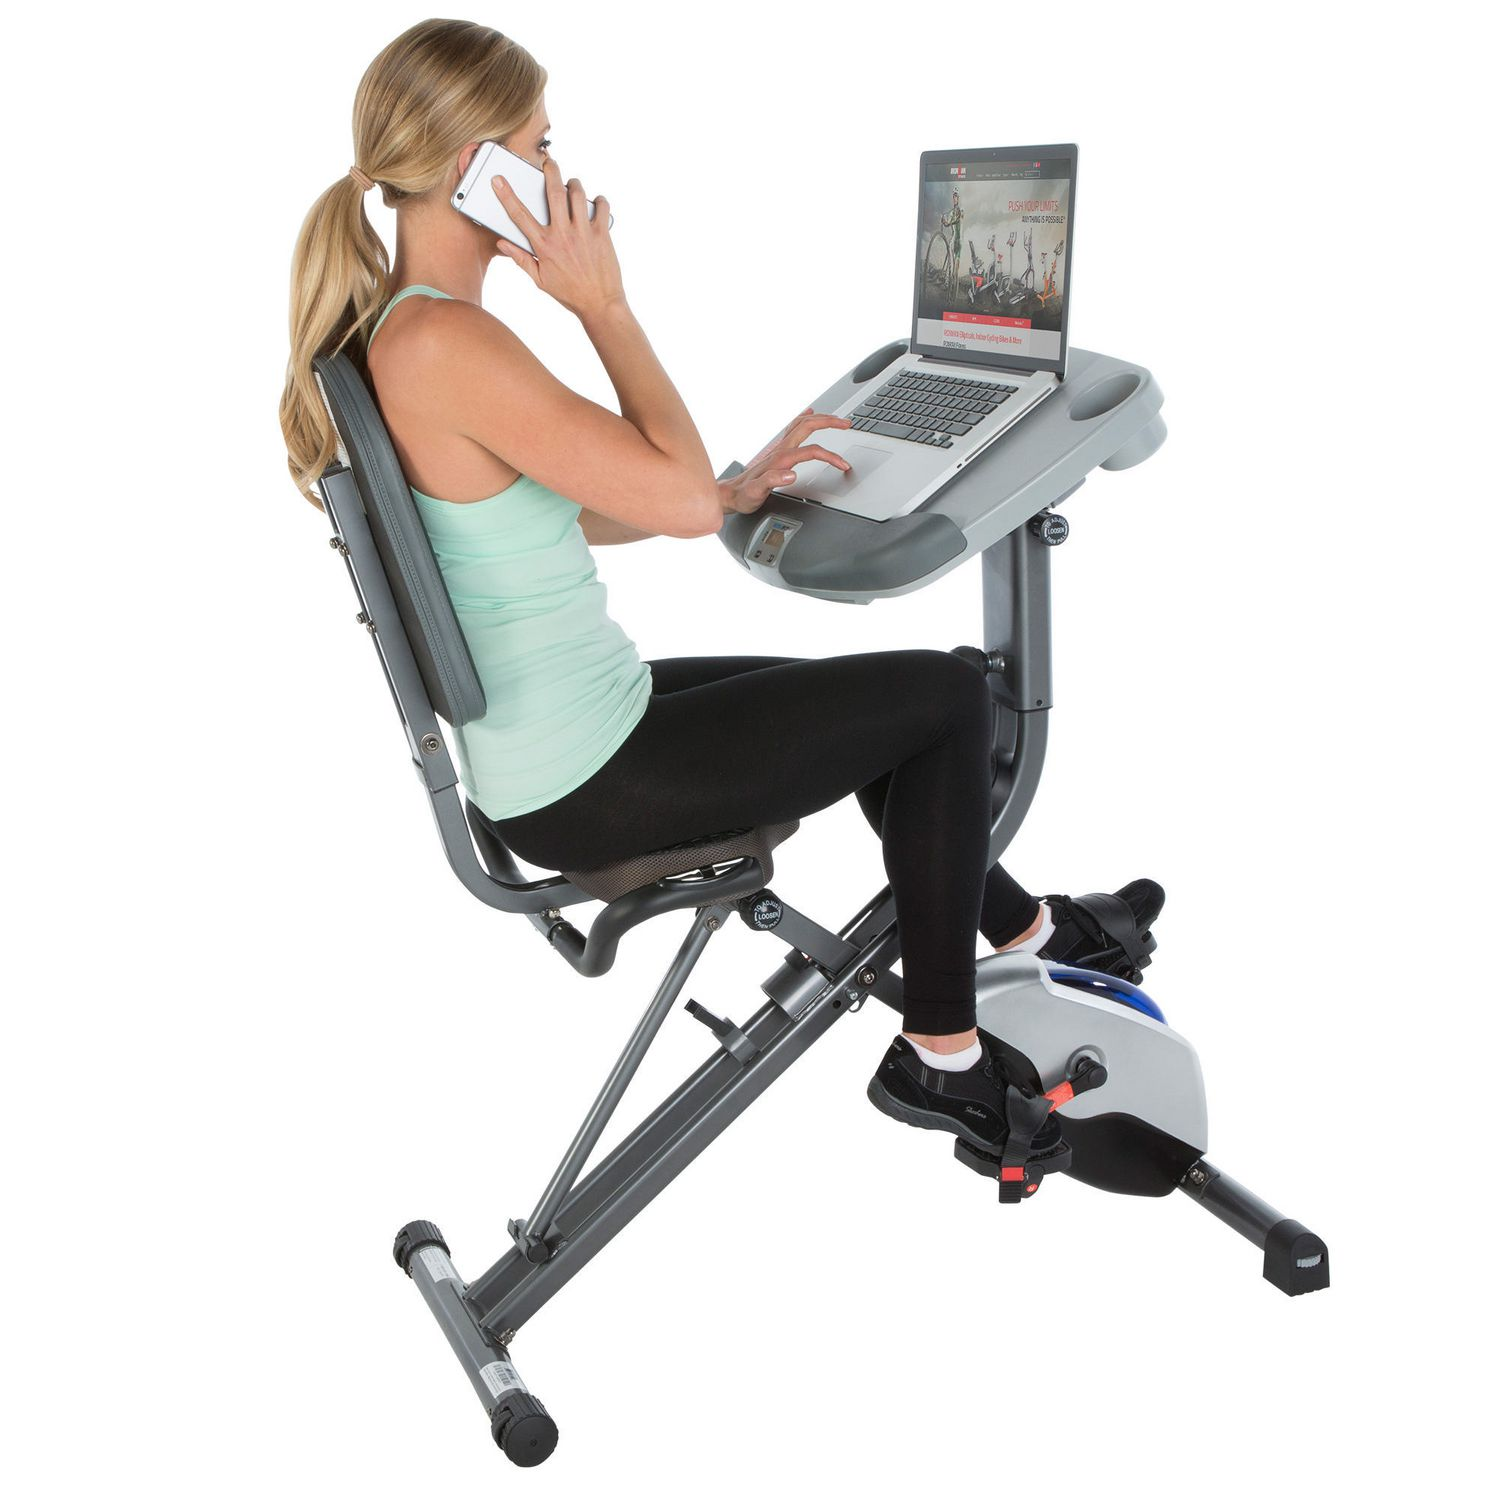 back loctek office bicycle ergonomic bikes desk category magnetic bike exercise fitness for recumbent product rest with under